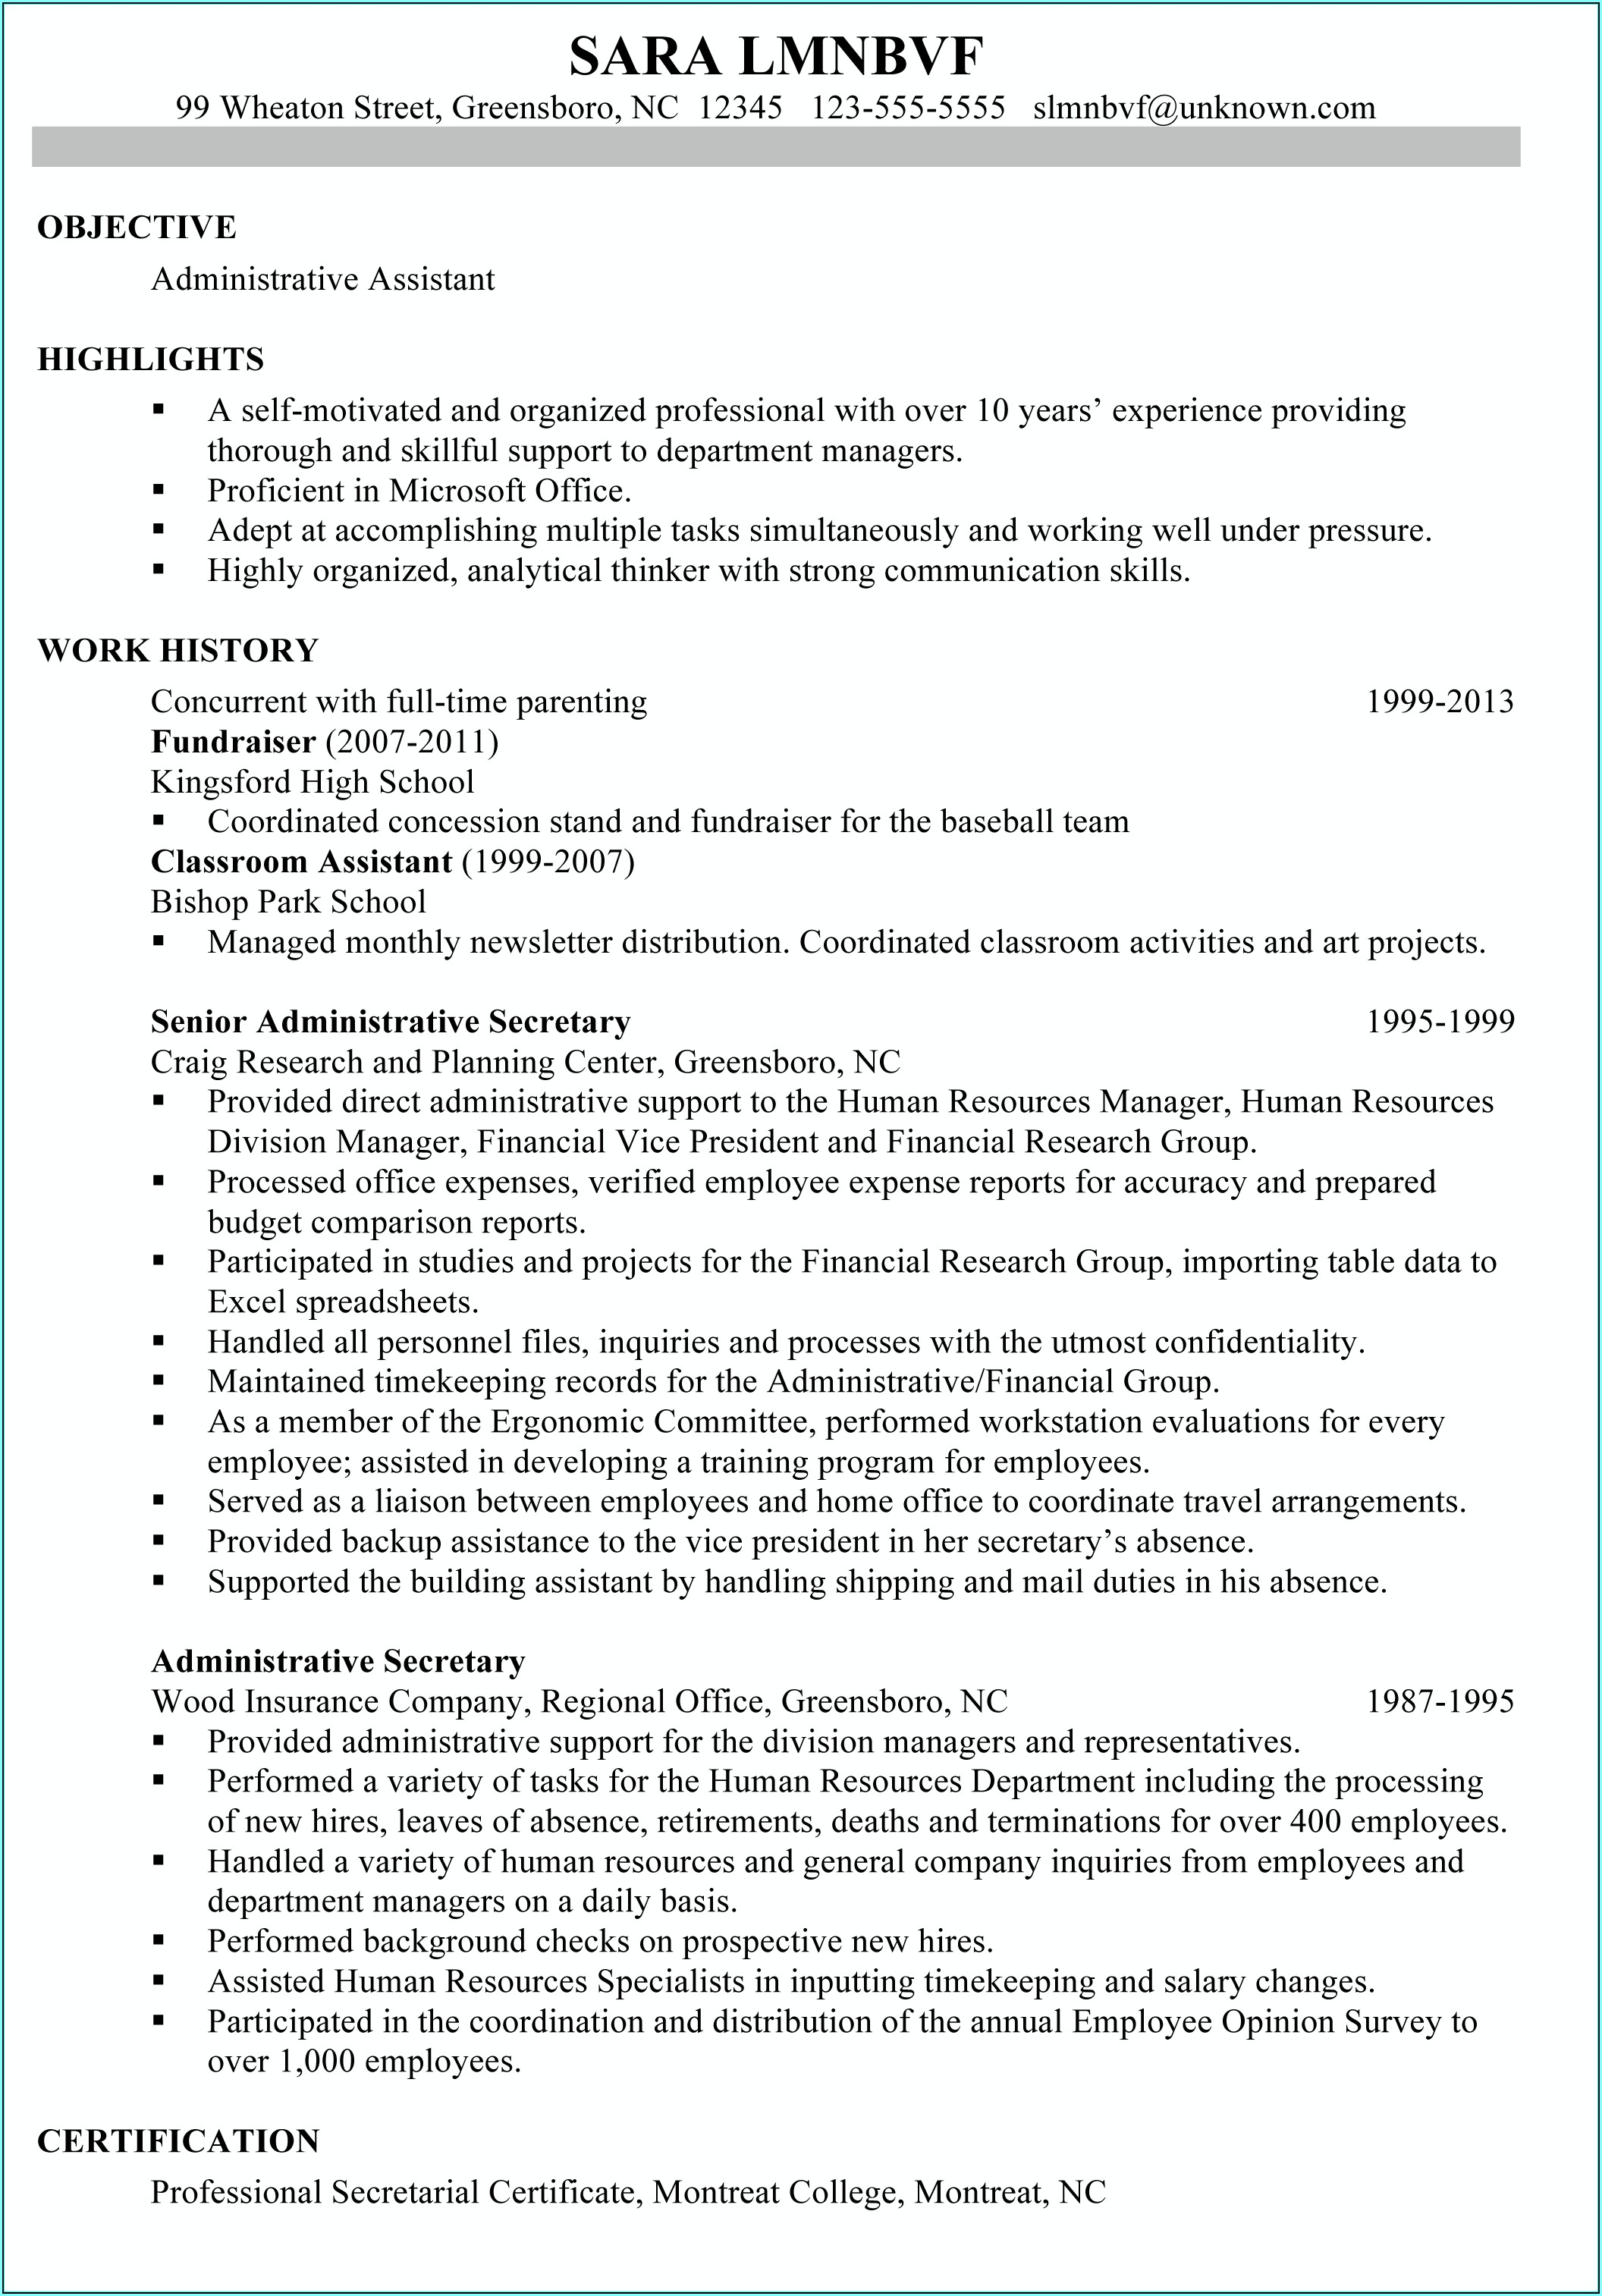 Ready Made Resume For Job